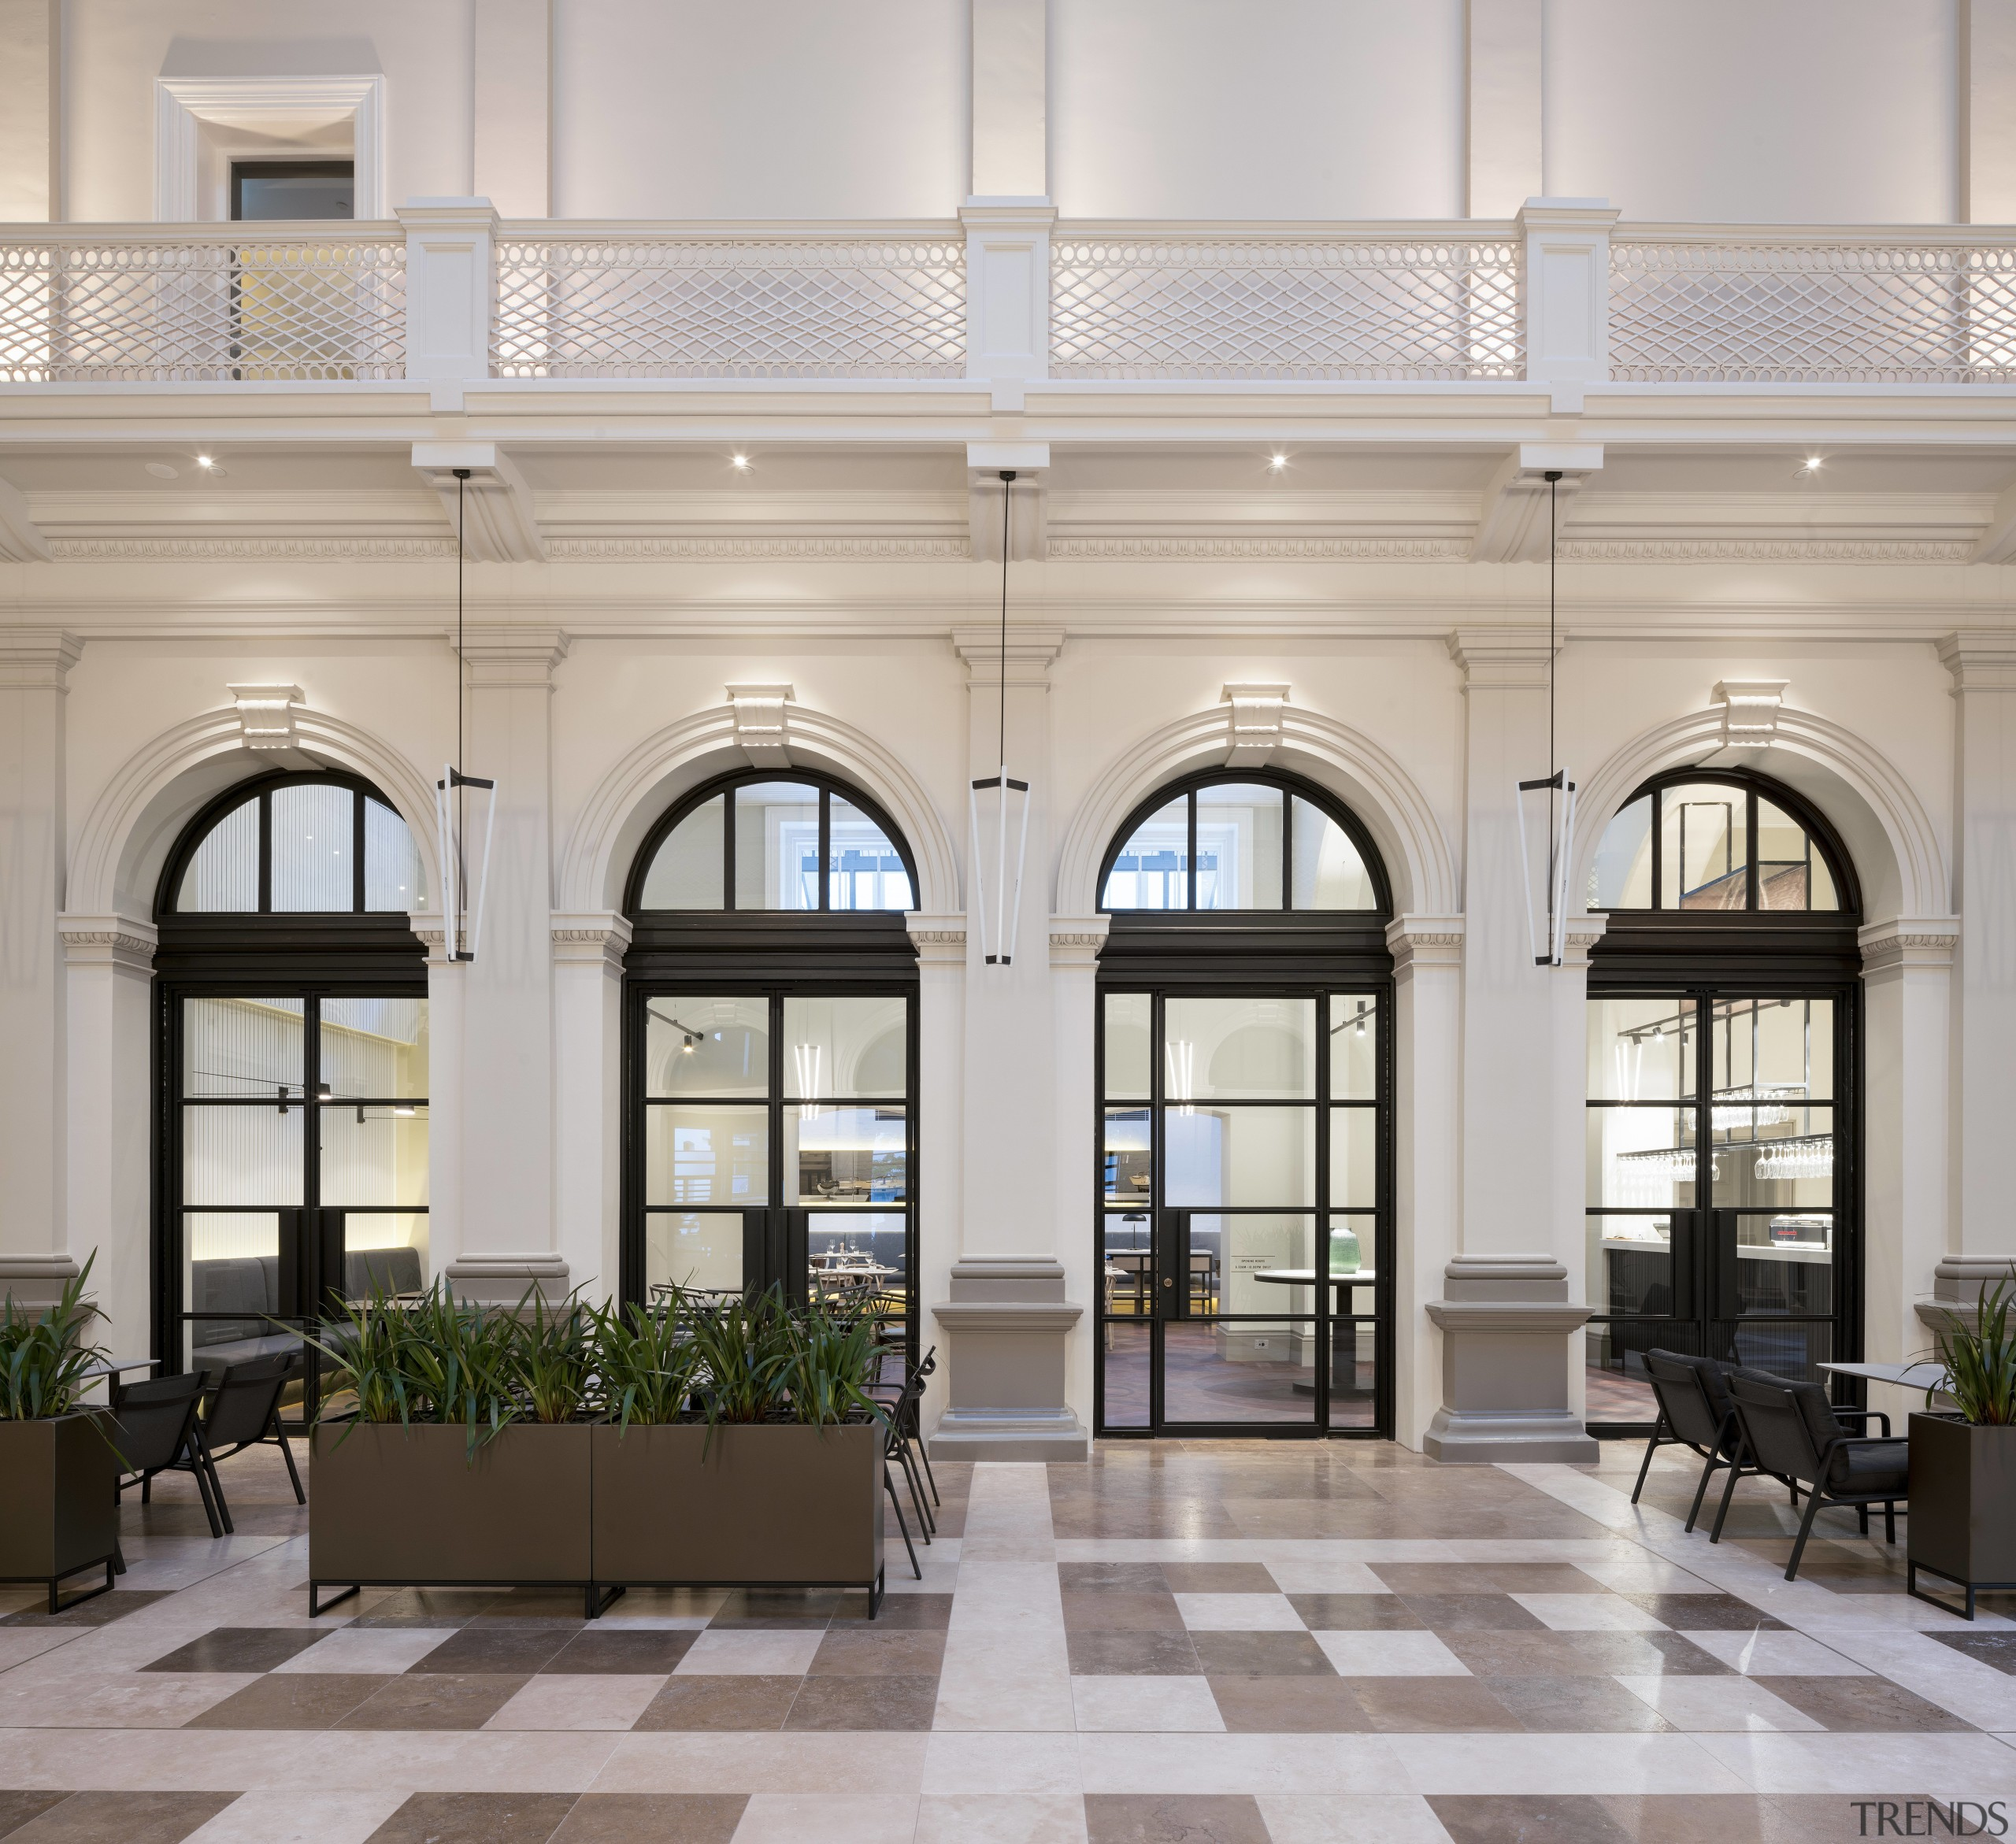 The Postal Hall gives access to the hotels ceiling, interior design, lobby, real estate, gray